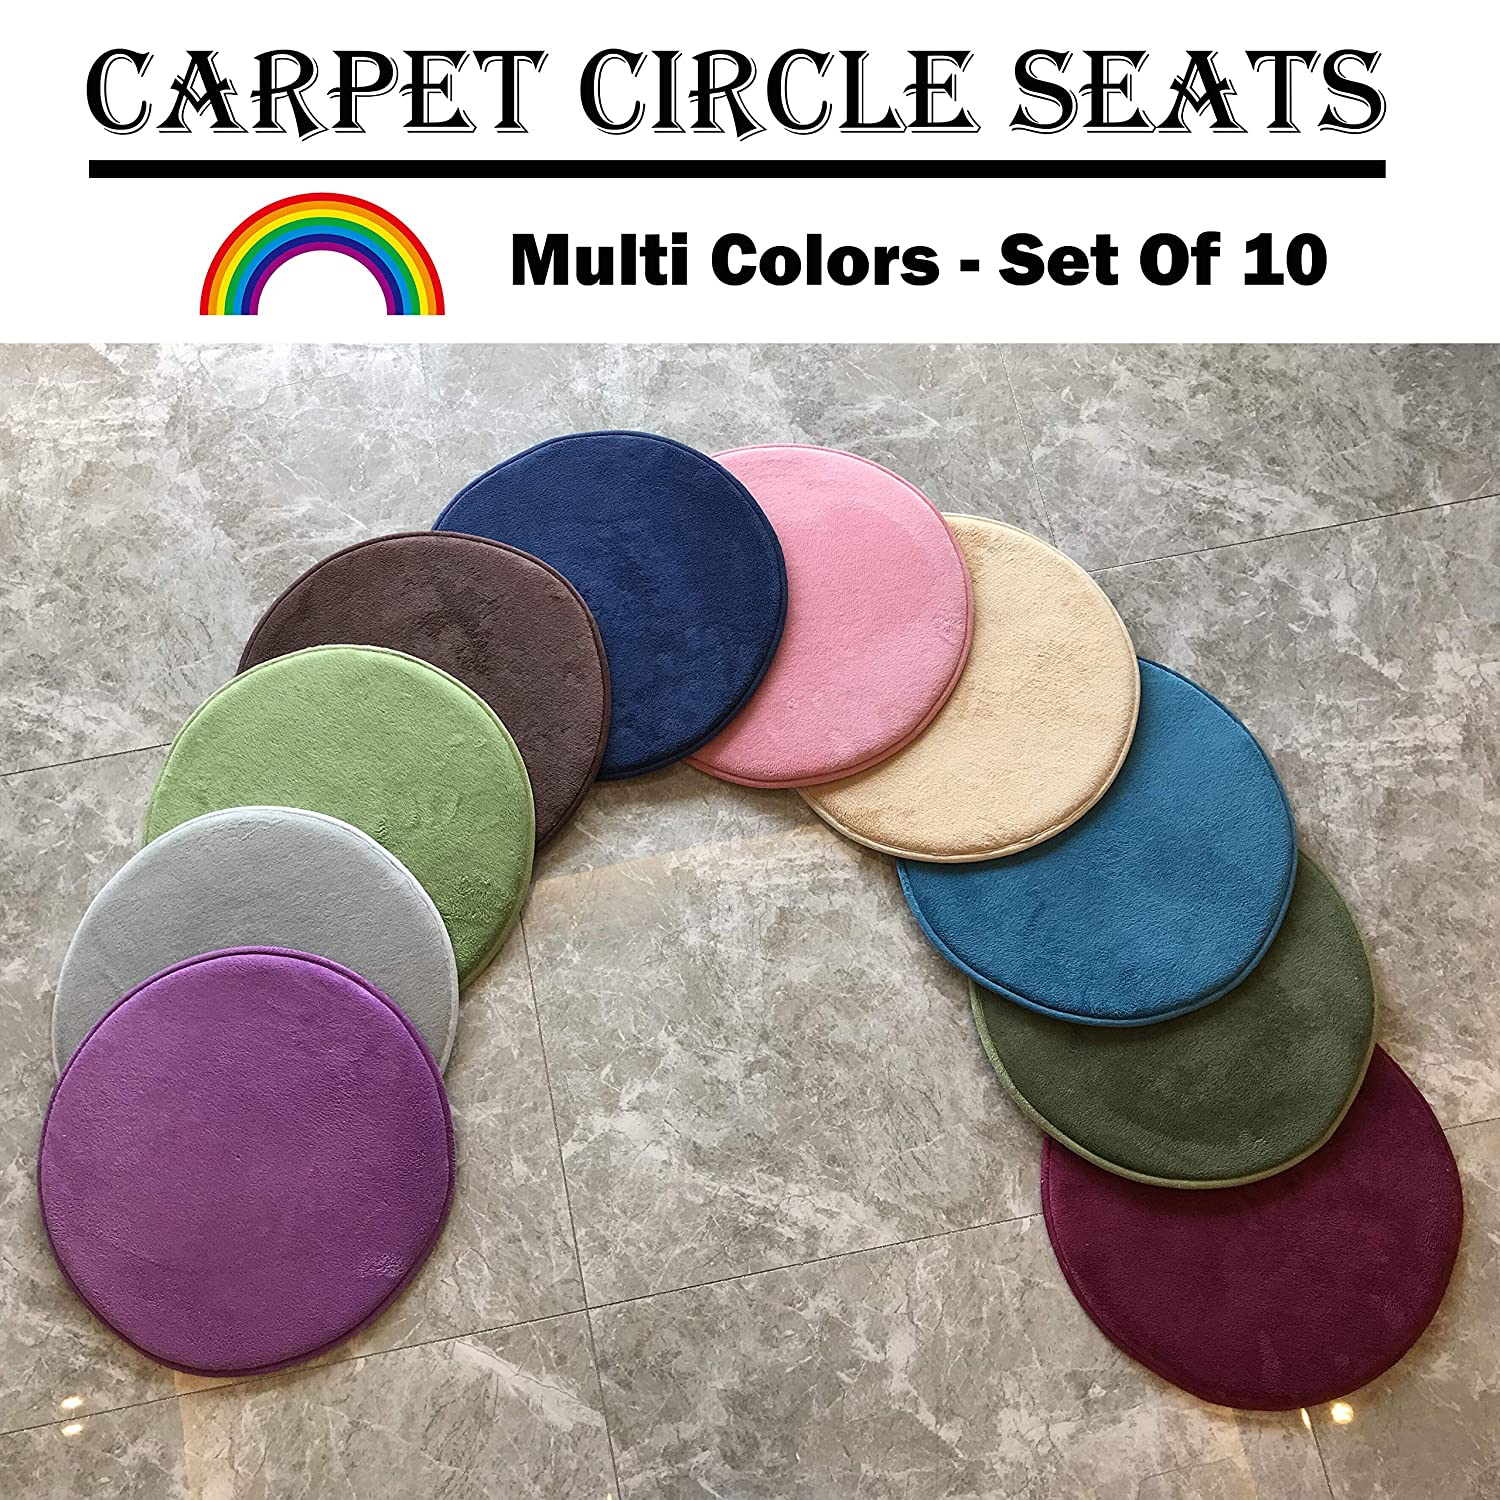 "10 Kids Floor Mat & Cushions - 20"" Round Soft Warm Carpet Circle Seats 